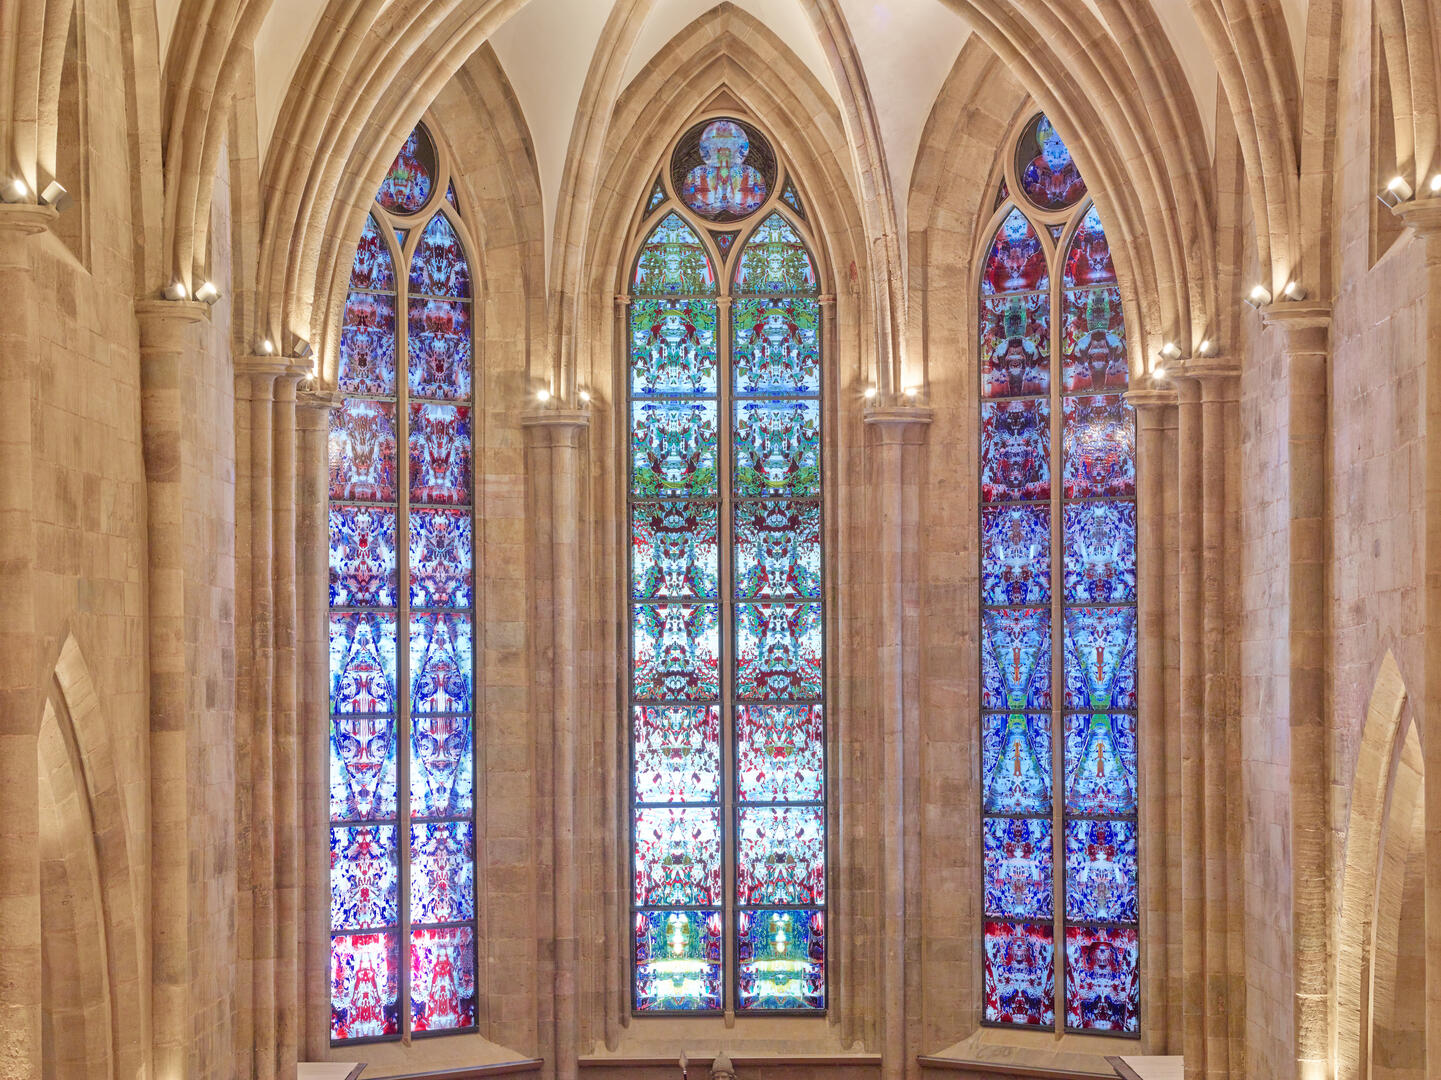 The three Richter choir windows at Tholey Abbey, with designs like a Persian rug or kaleidescope; the far left window mostly pinks, blues and purples; the middle of greens, reds and blues; the right of similar coloring to the left, but deeper hues, and bits of green